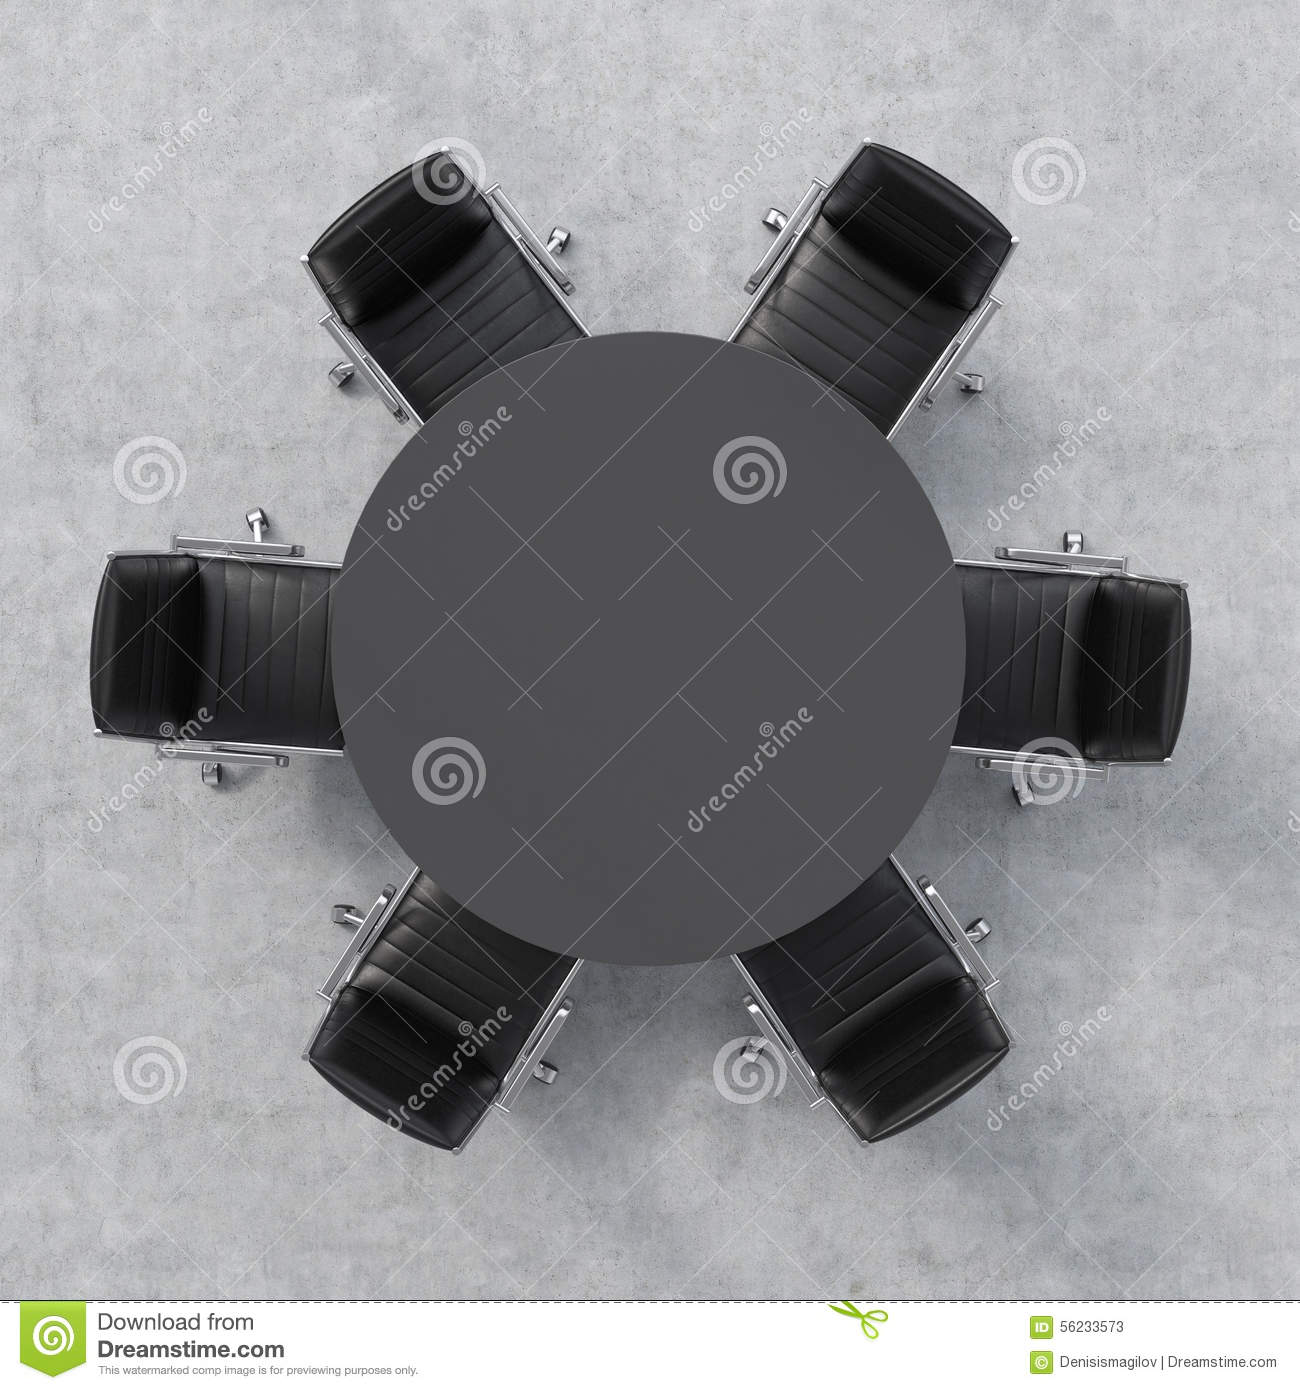 round table 6 chairs dimensions chair gym exercise manual top view of a conference room black and six